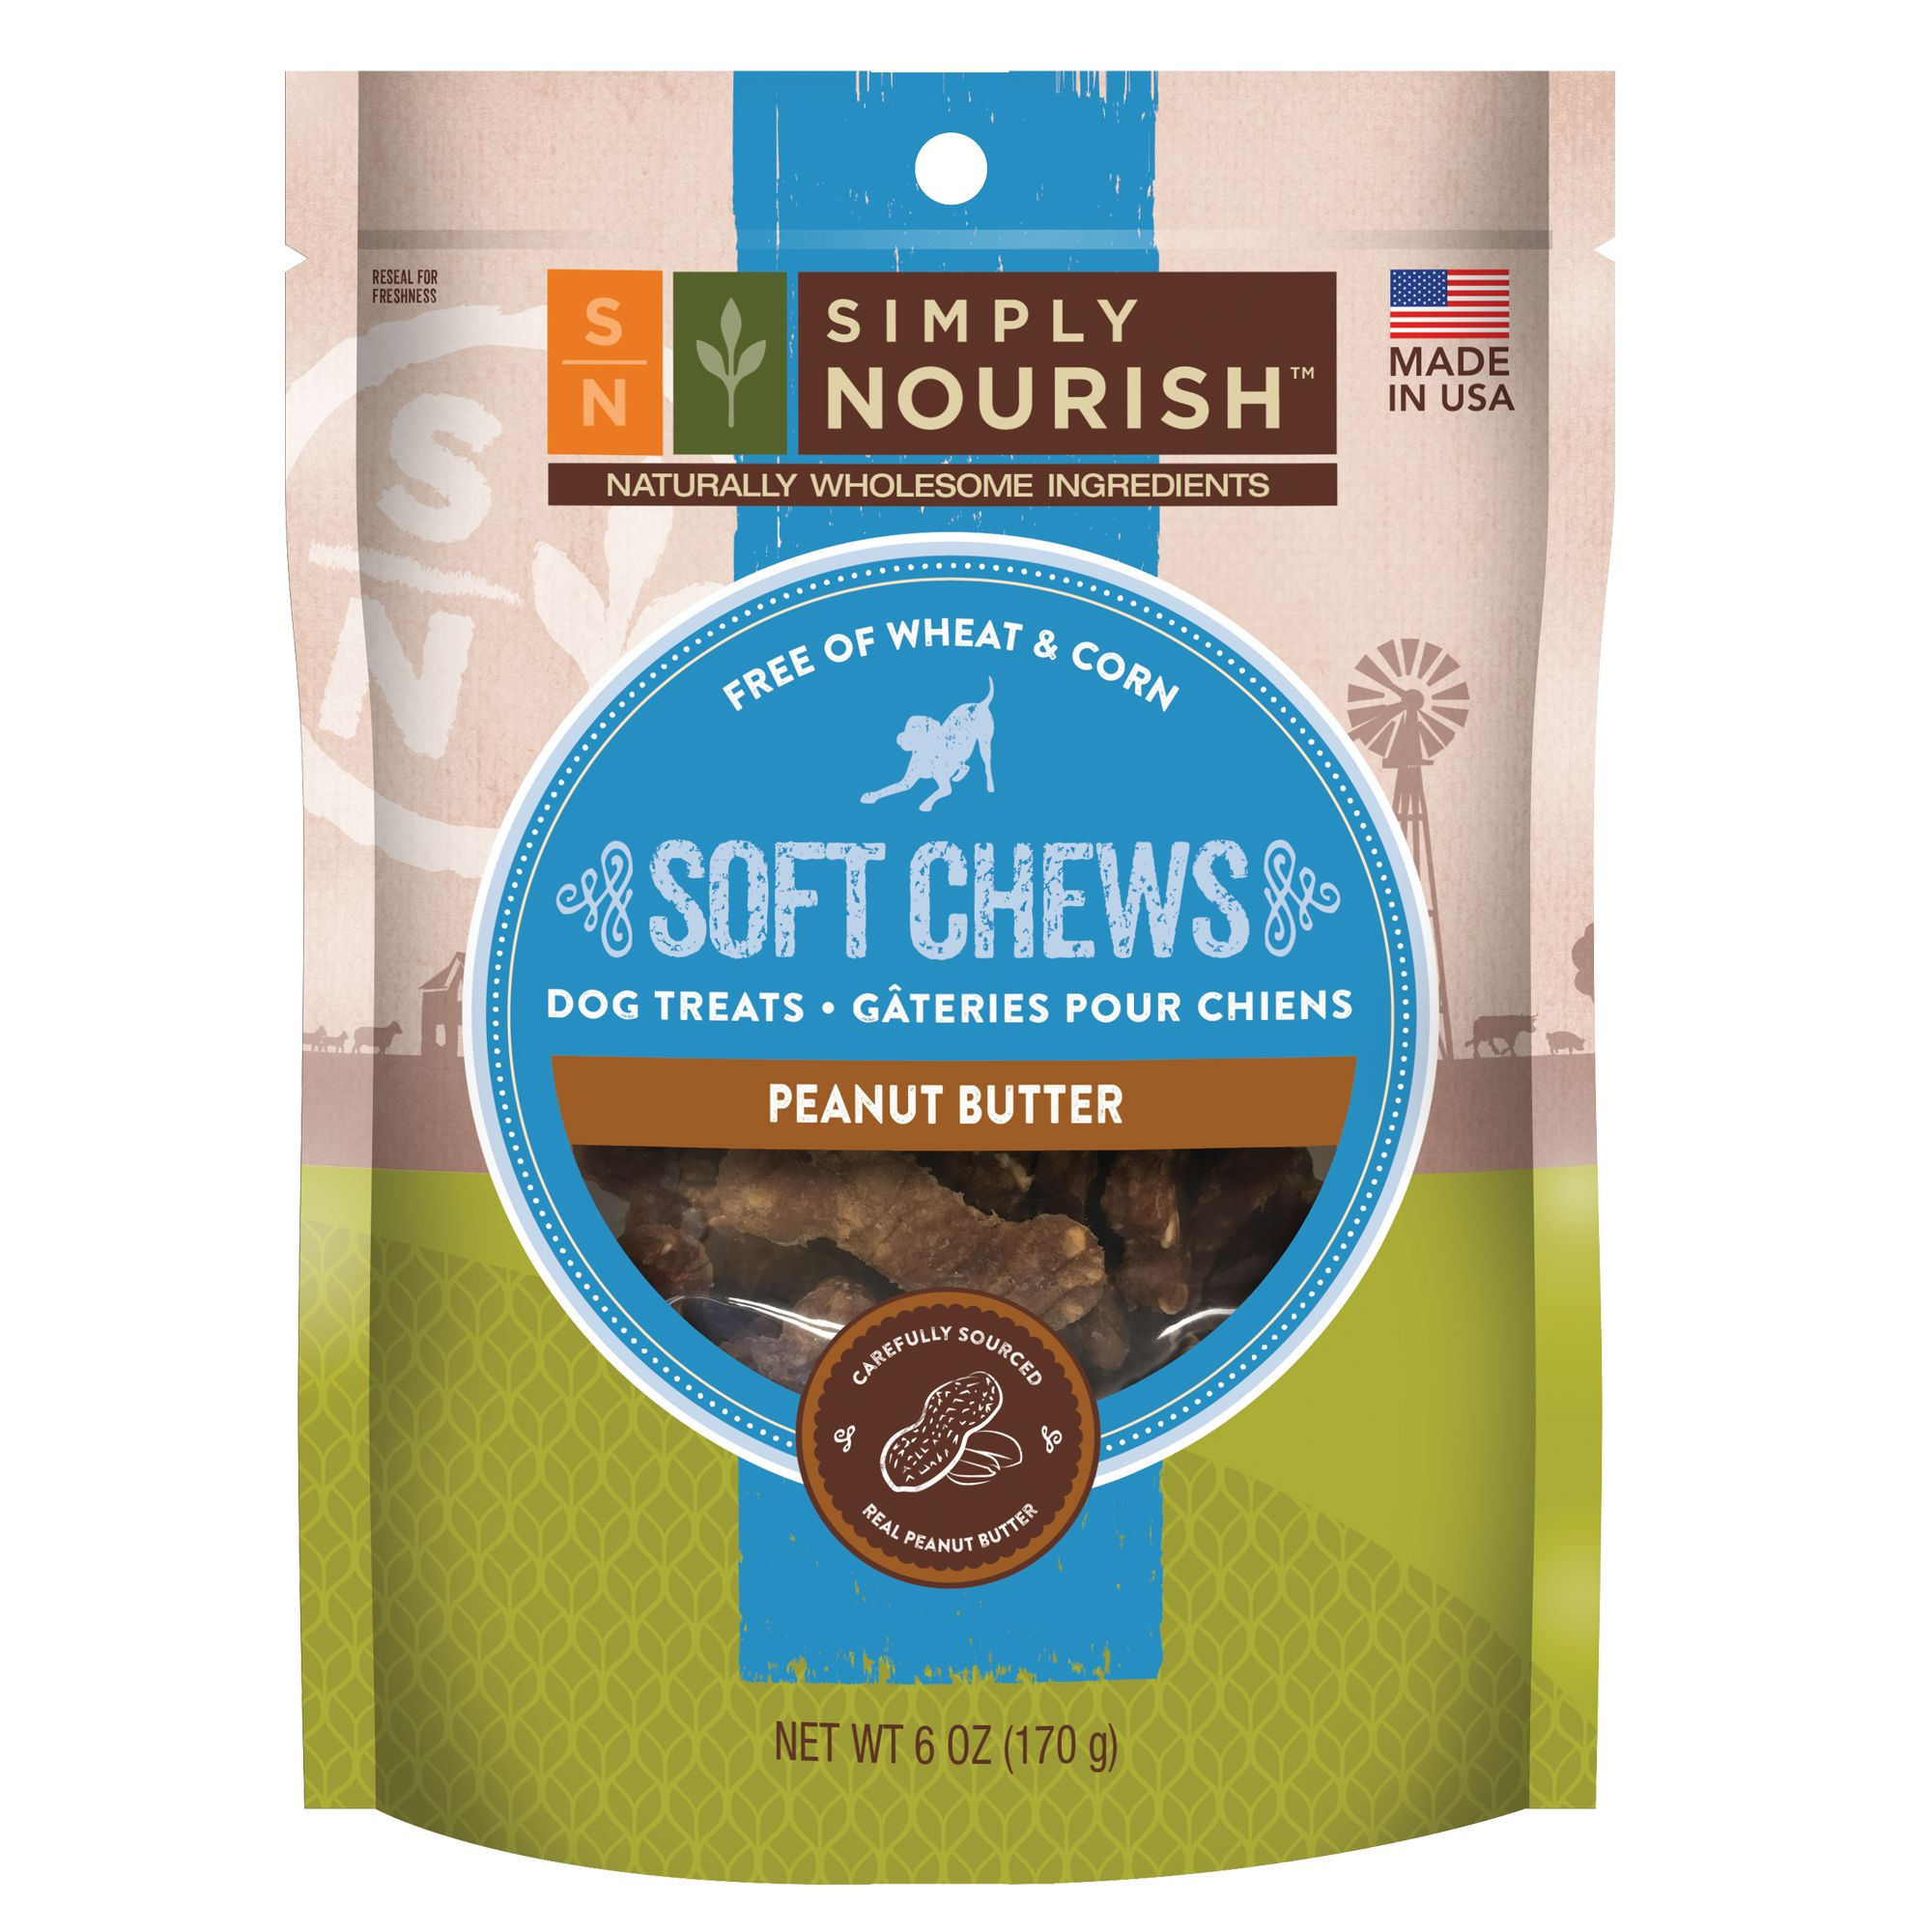 Simply Nourish, Soft Chews Dog Treat - Natural, Peanut Butter size: 6 Oz, Chicken & Cheese, Adult 5266493